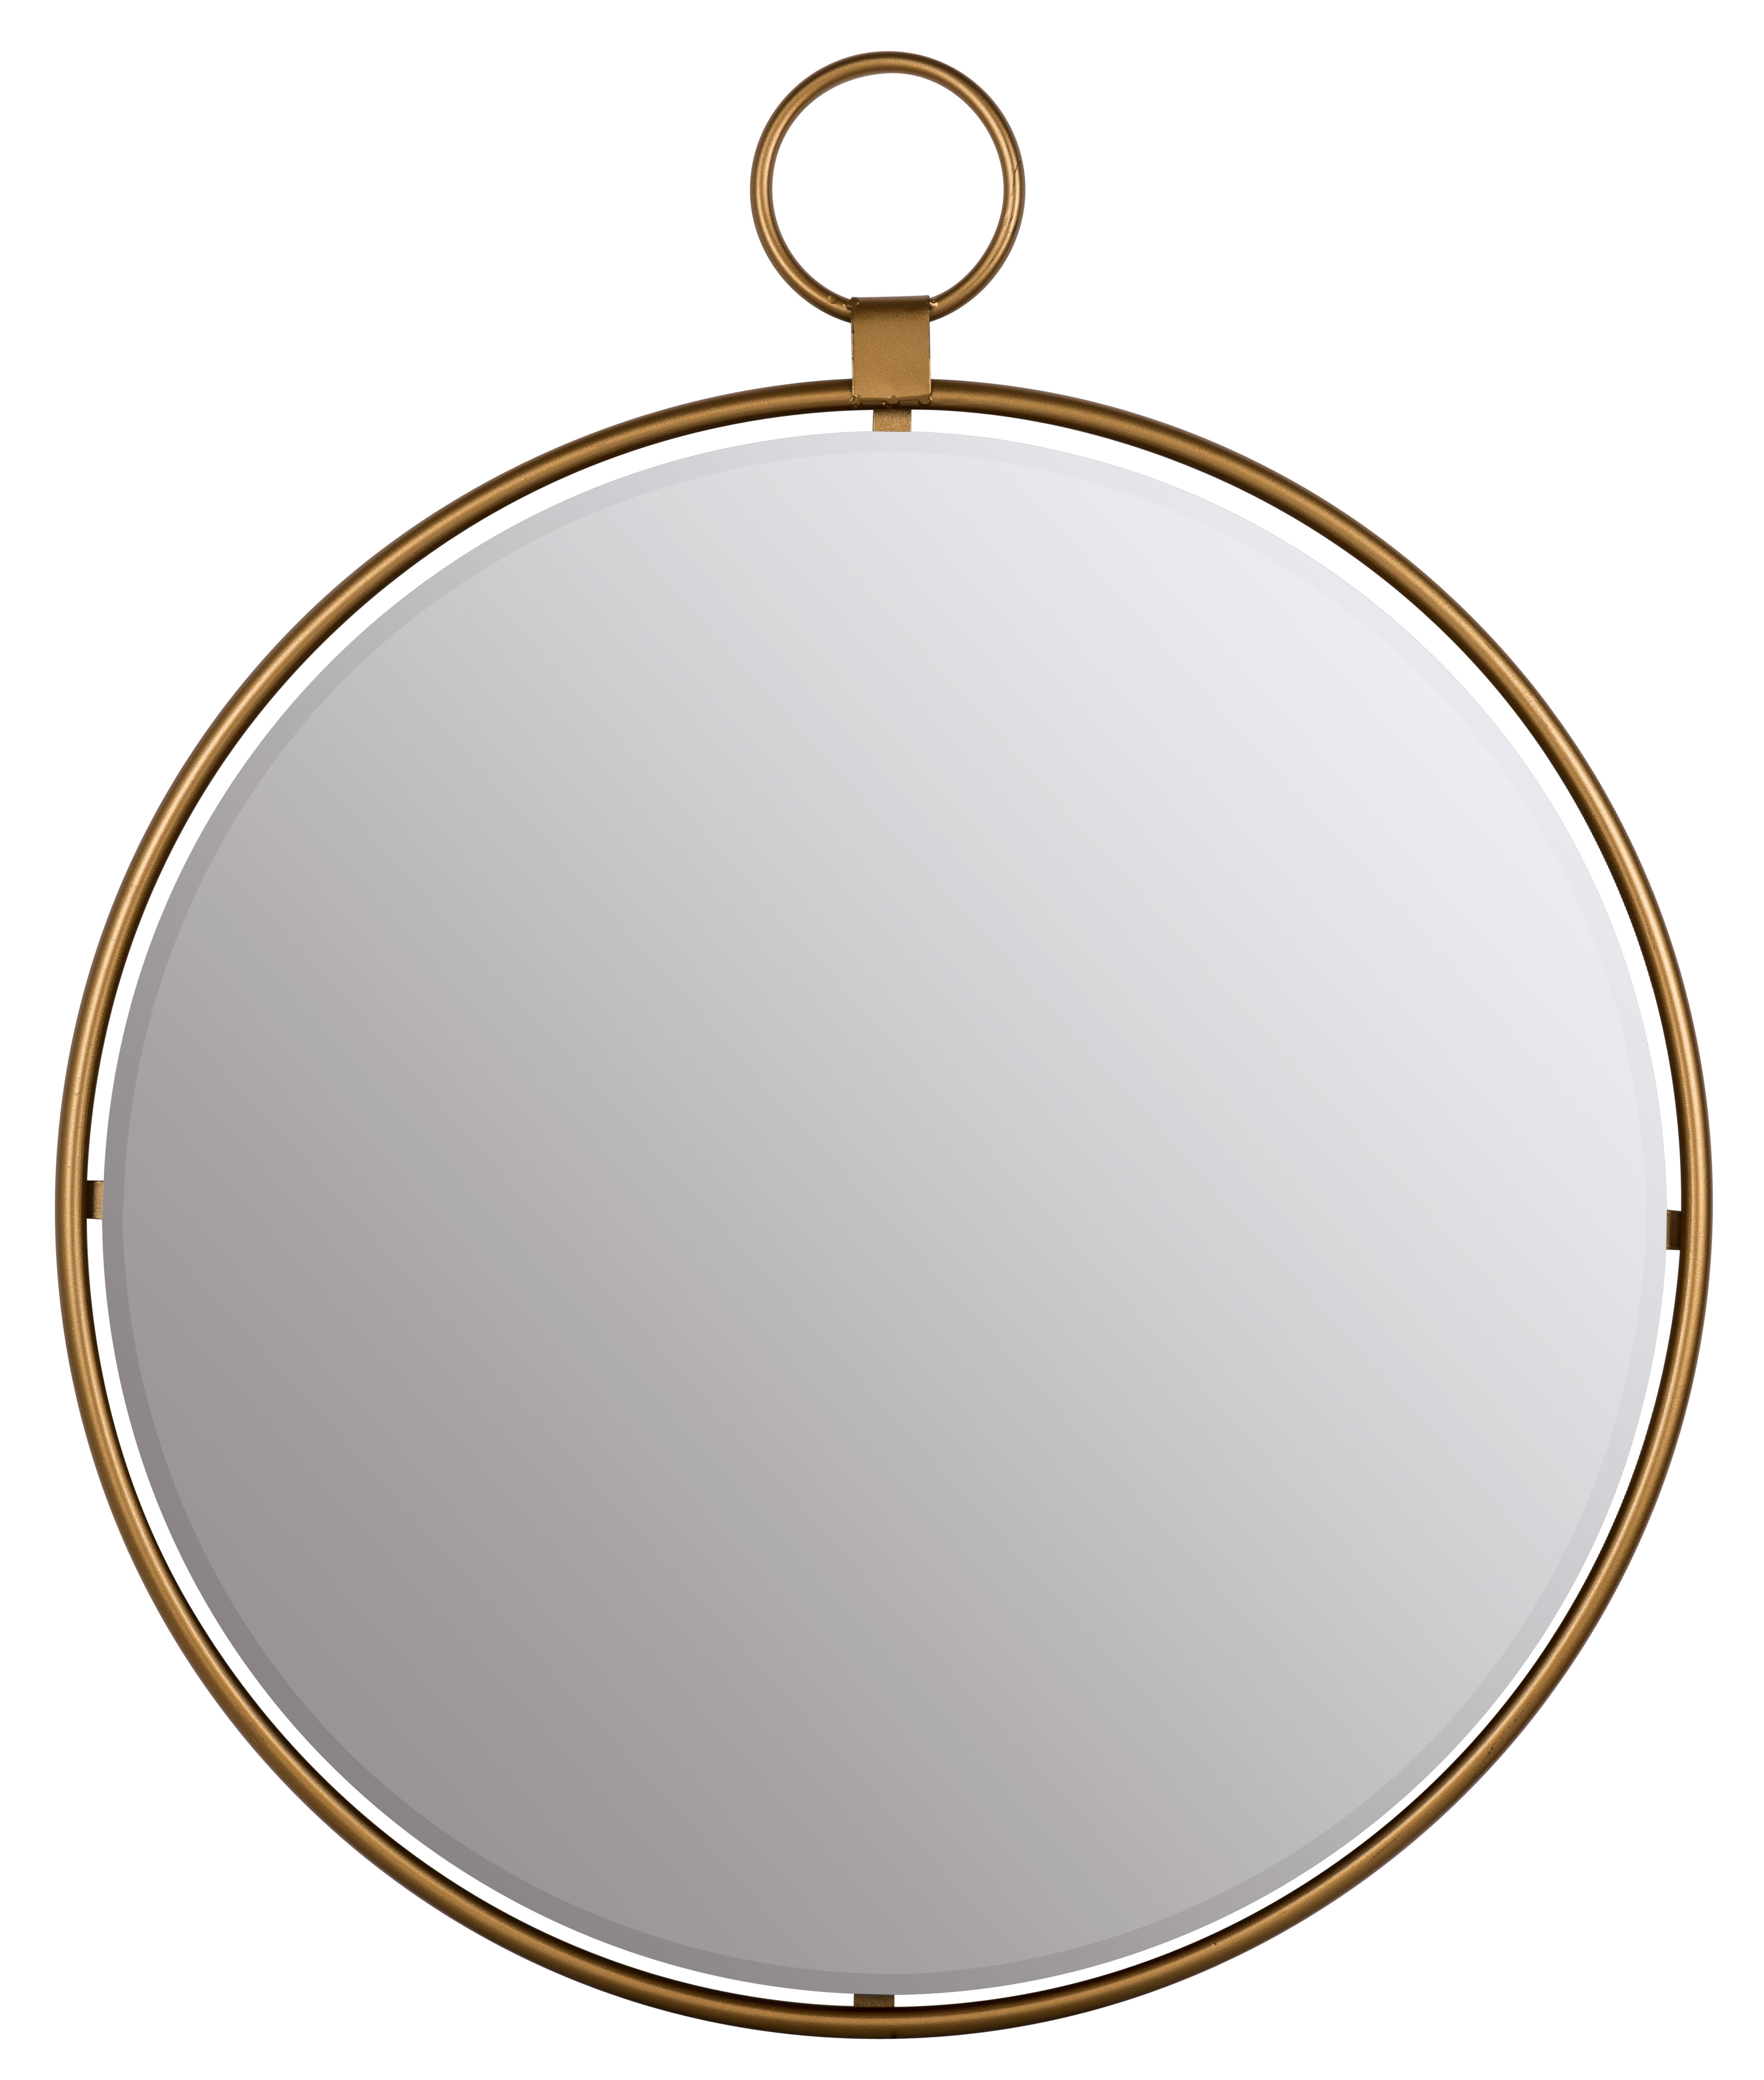 Matthias Round Accent Mirror Intended For Current Kinley Accent Mirrors (View 15 of 20)